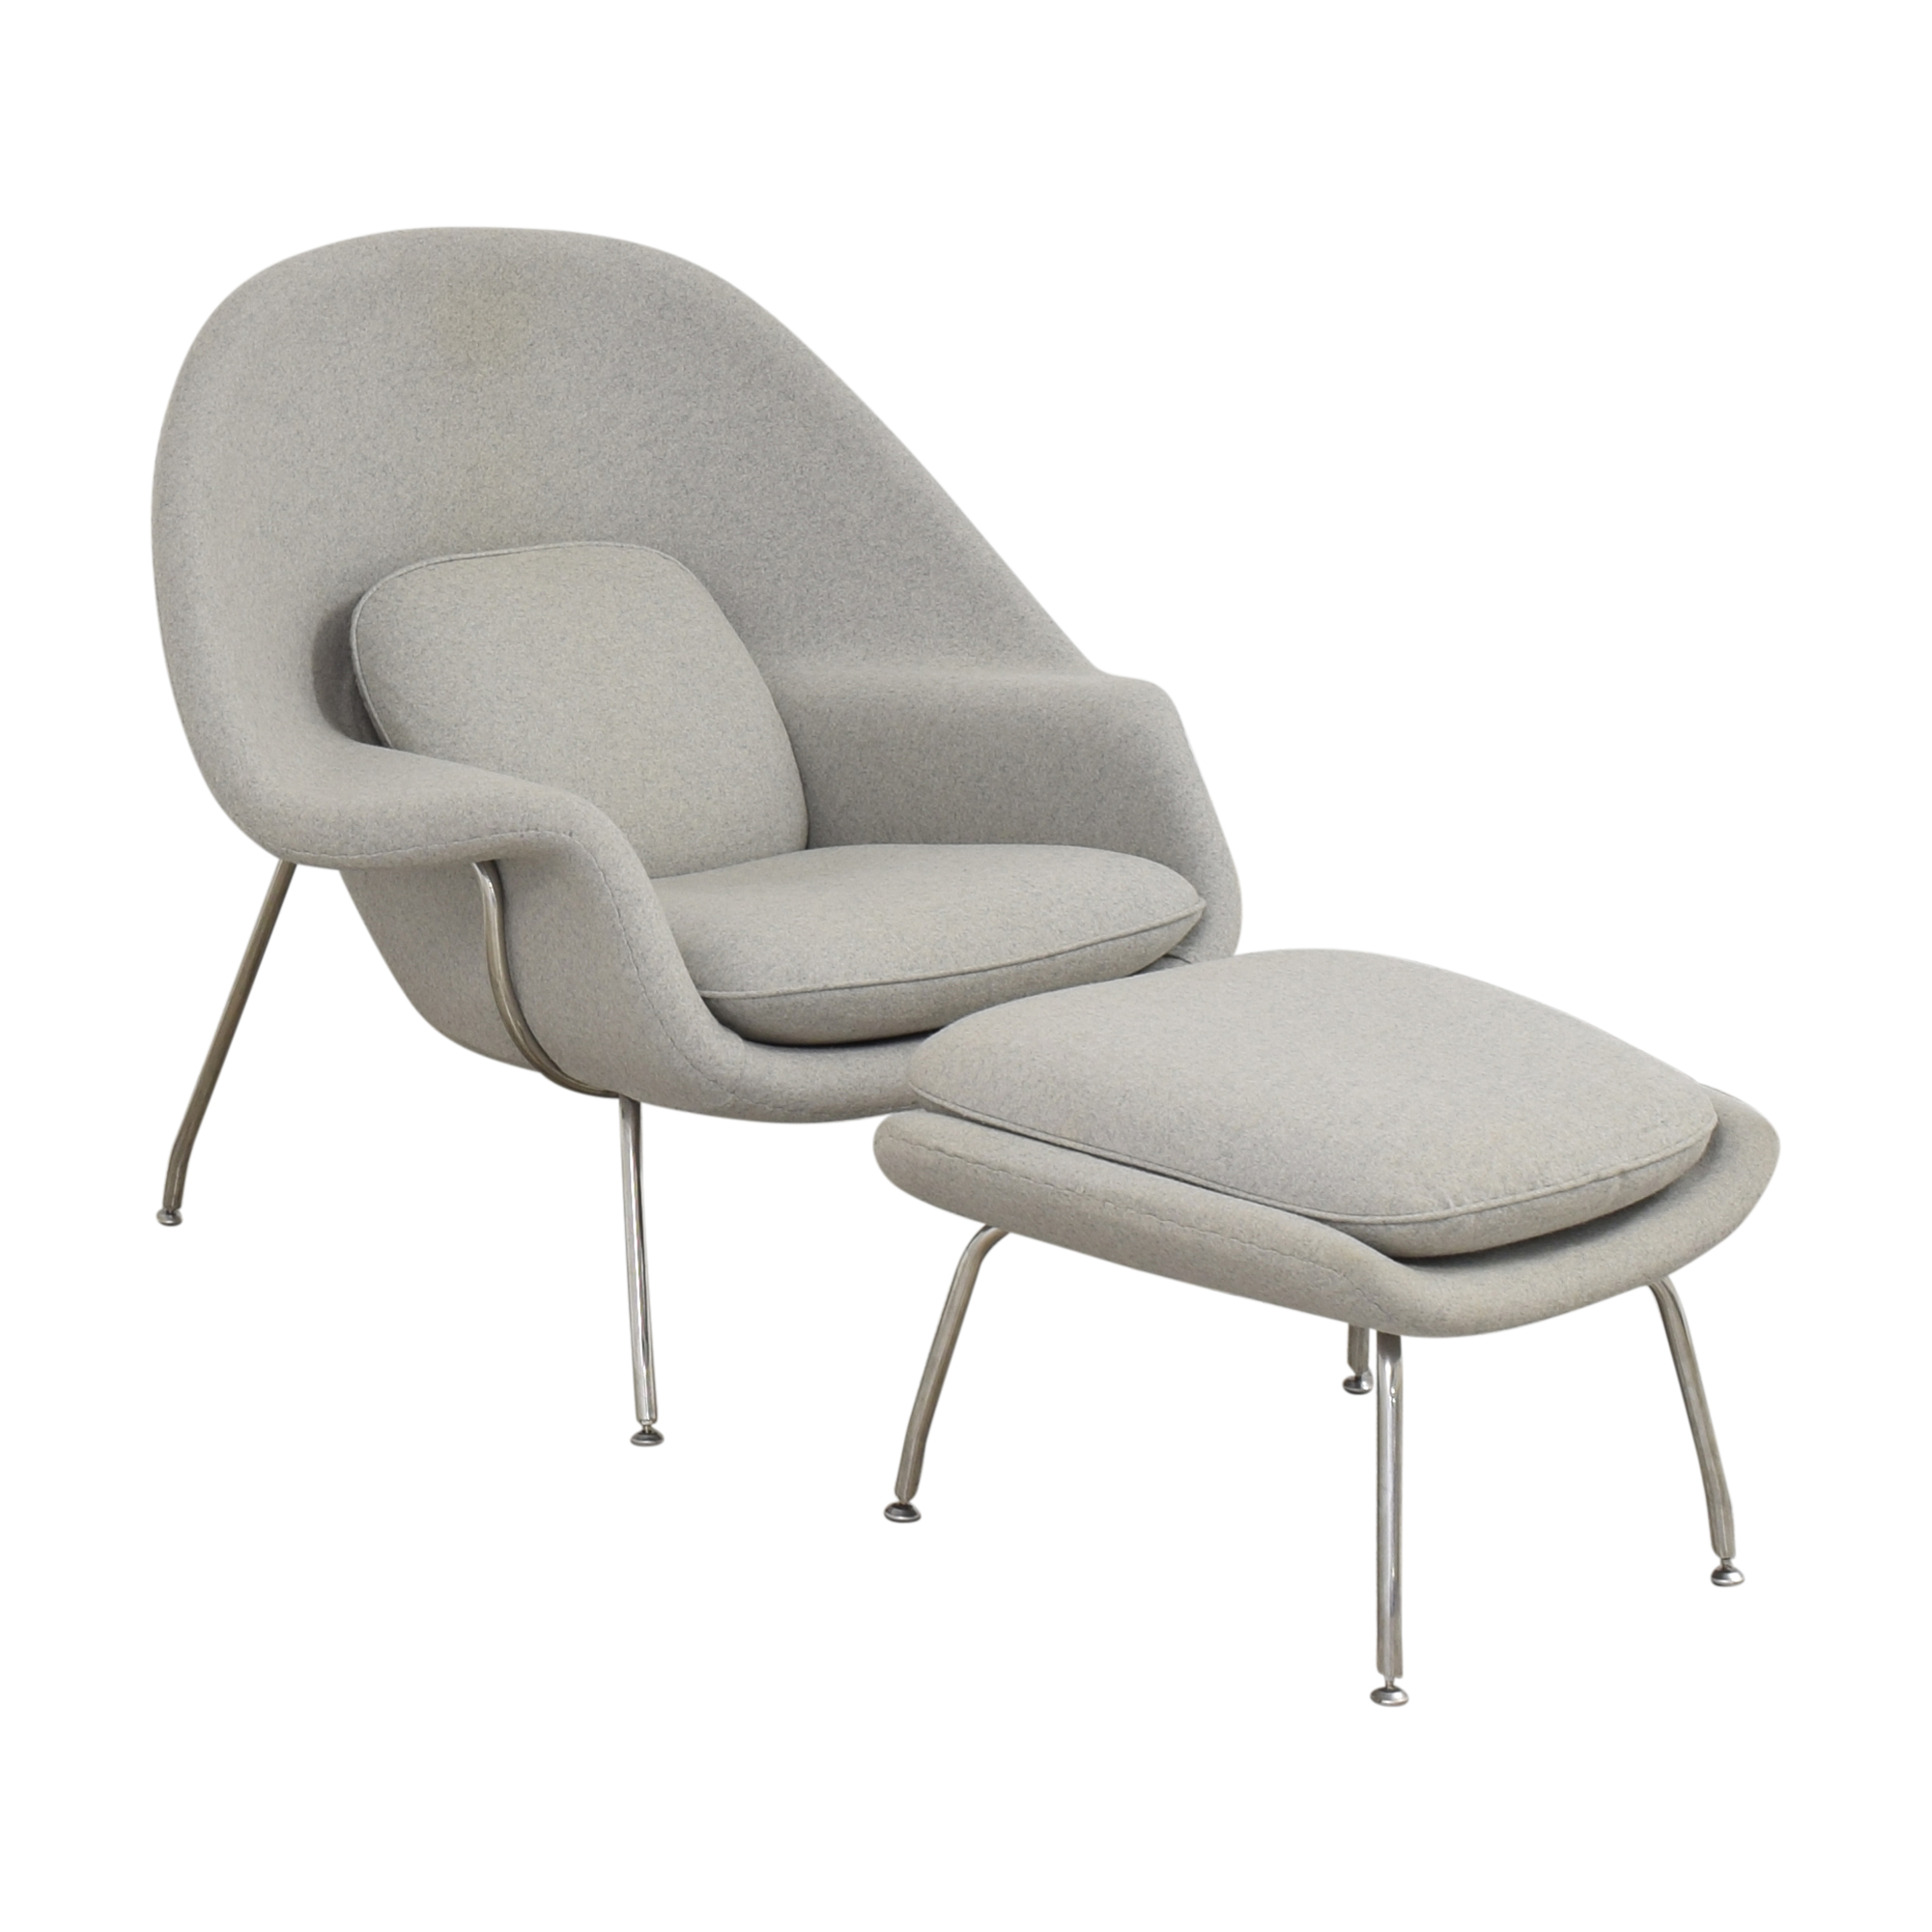 France and Son France and Son Womb Chair with Ottoman dimensions